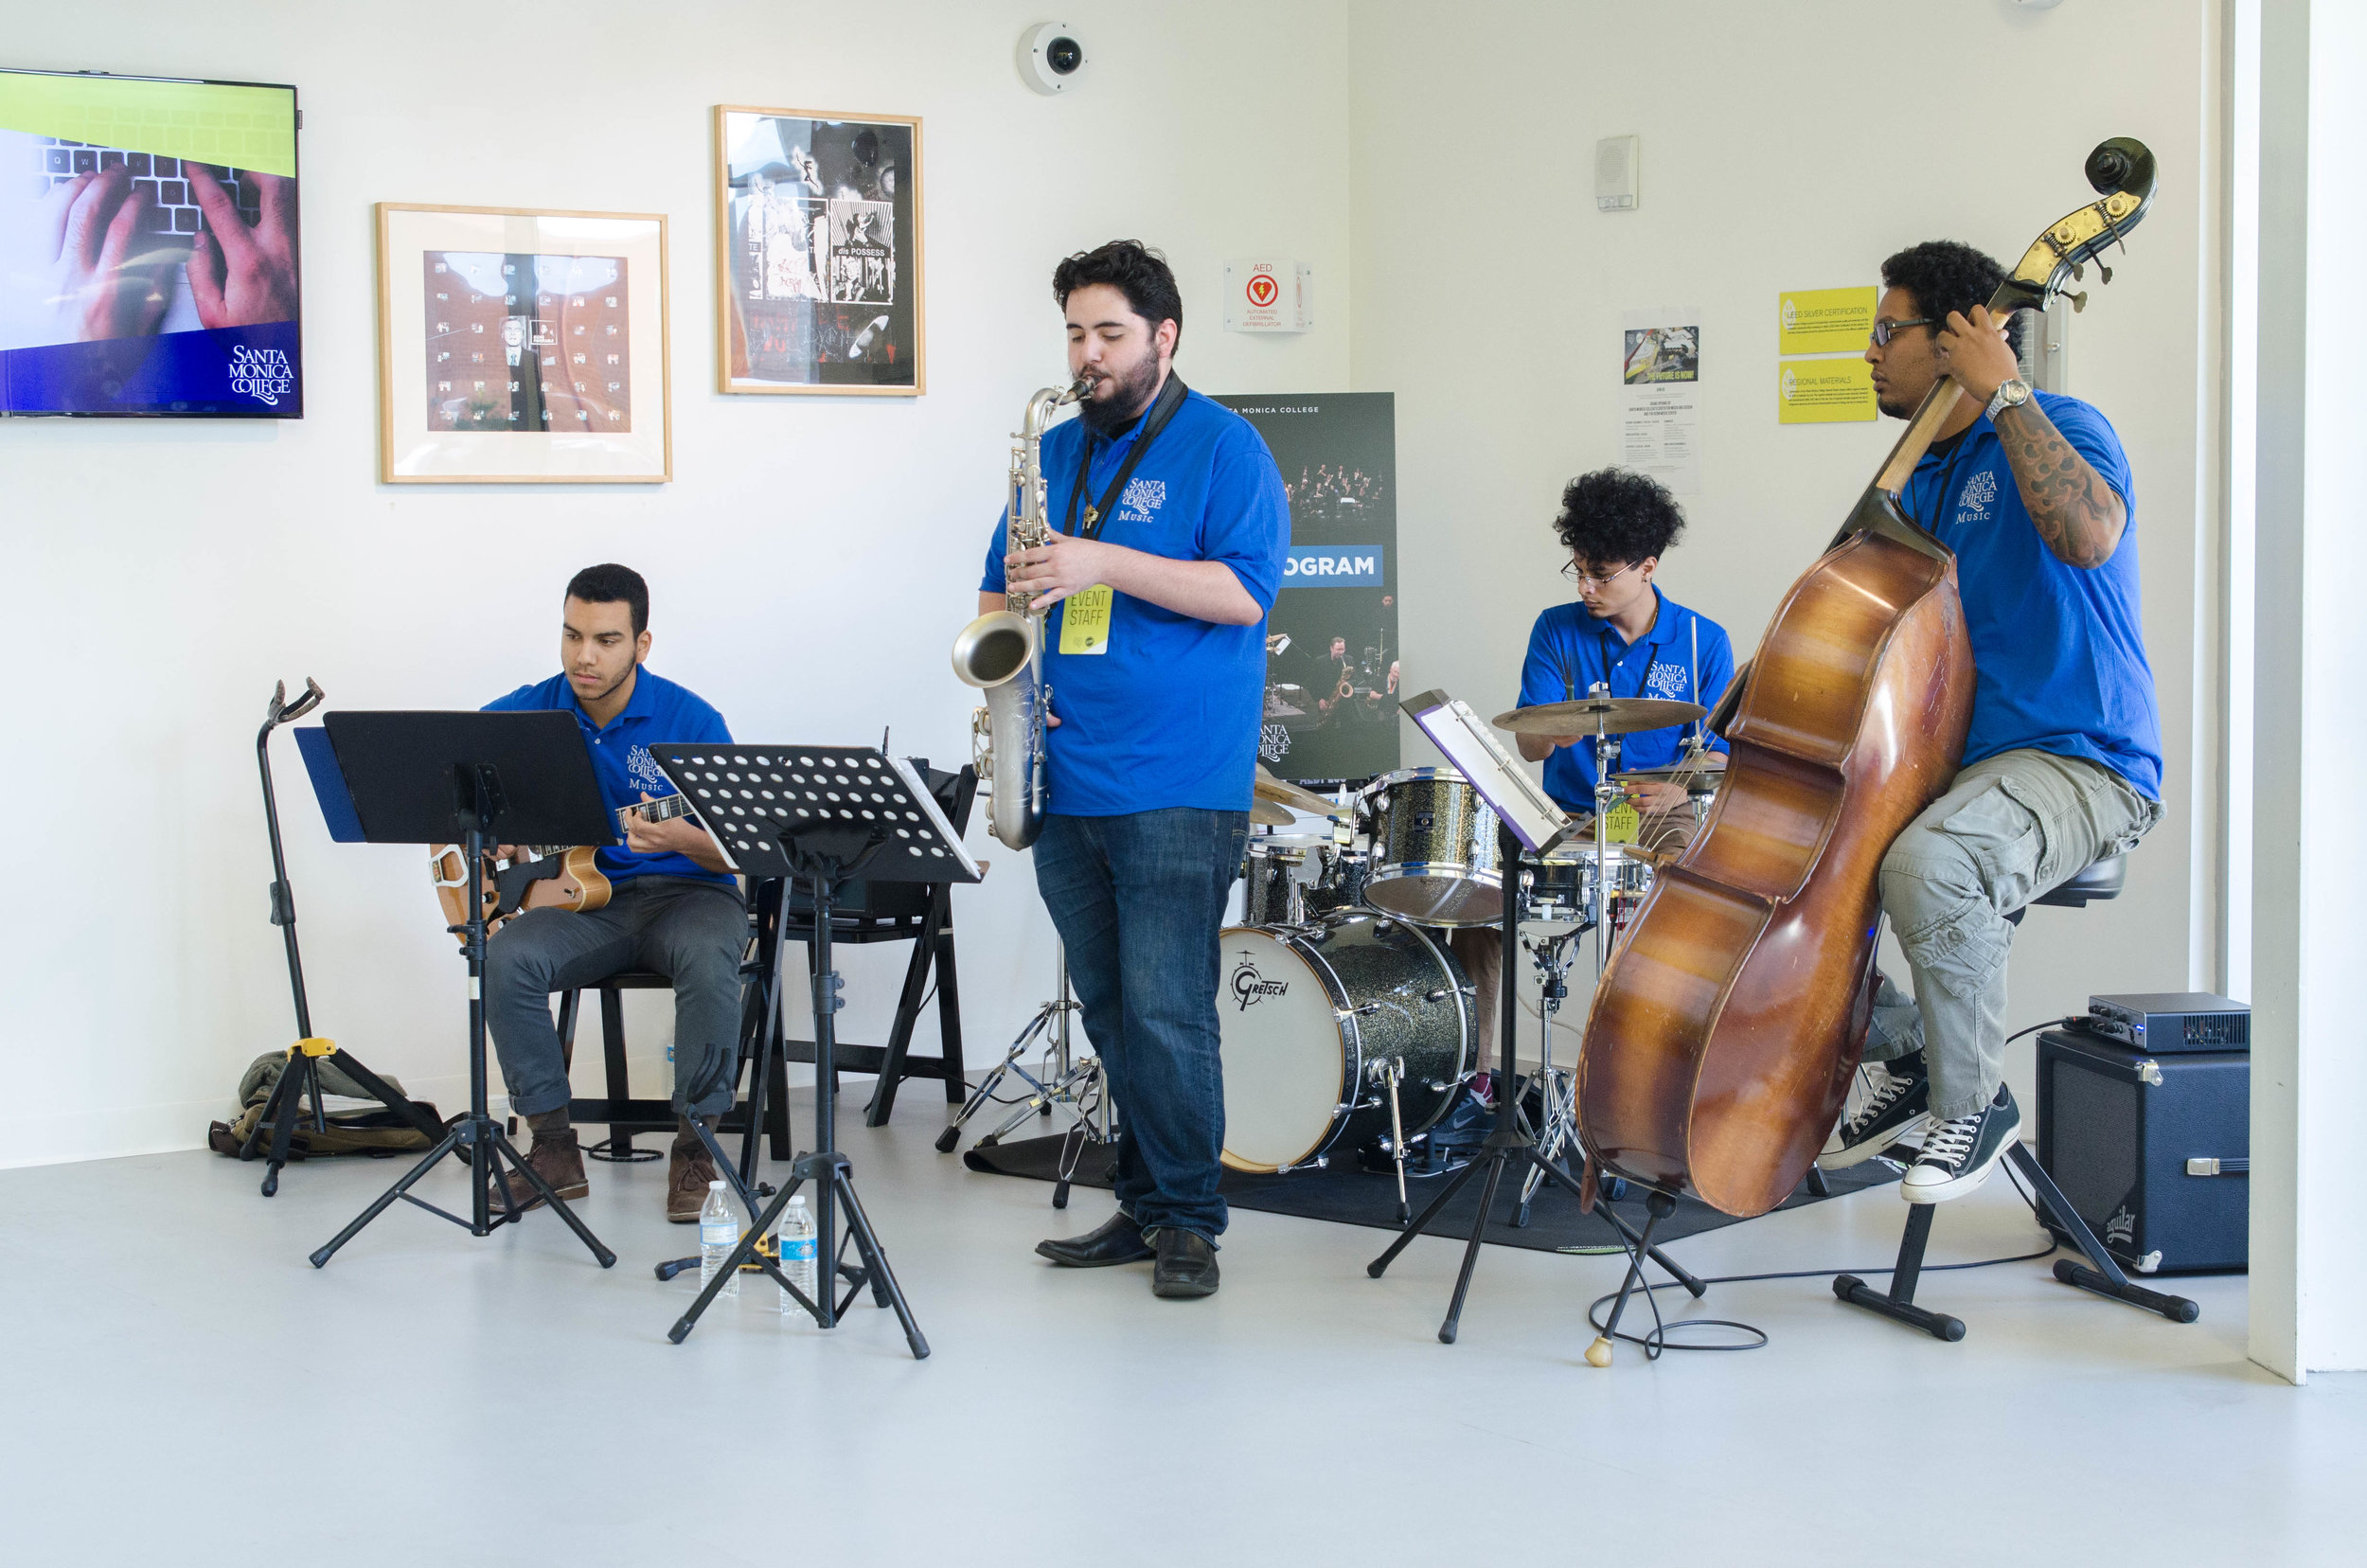 Santa Monica College Students from the Music Program play in C Building on the CMD Campus at the Open House of the Center for Media Design. Santa Monica, Calif. December 2,2017 (Photo by: Diana Parra Garcia)